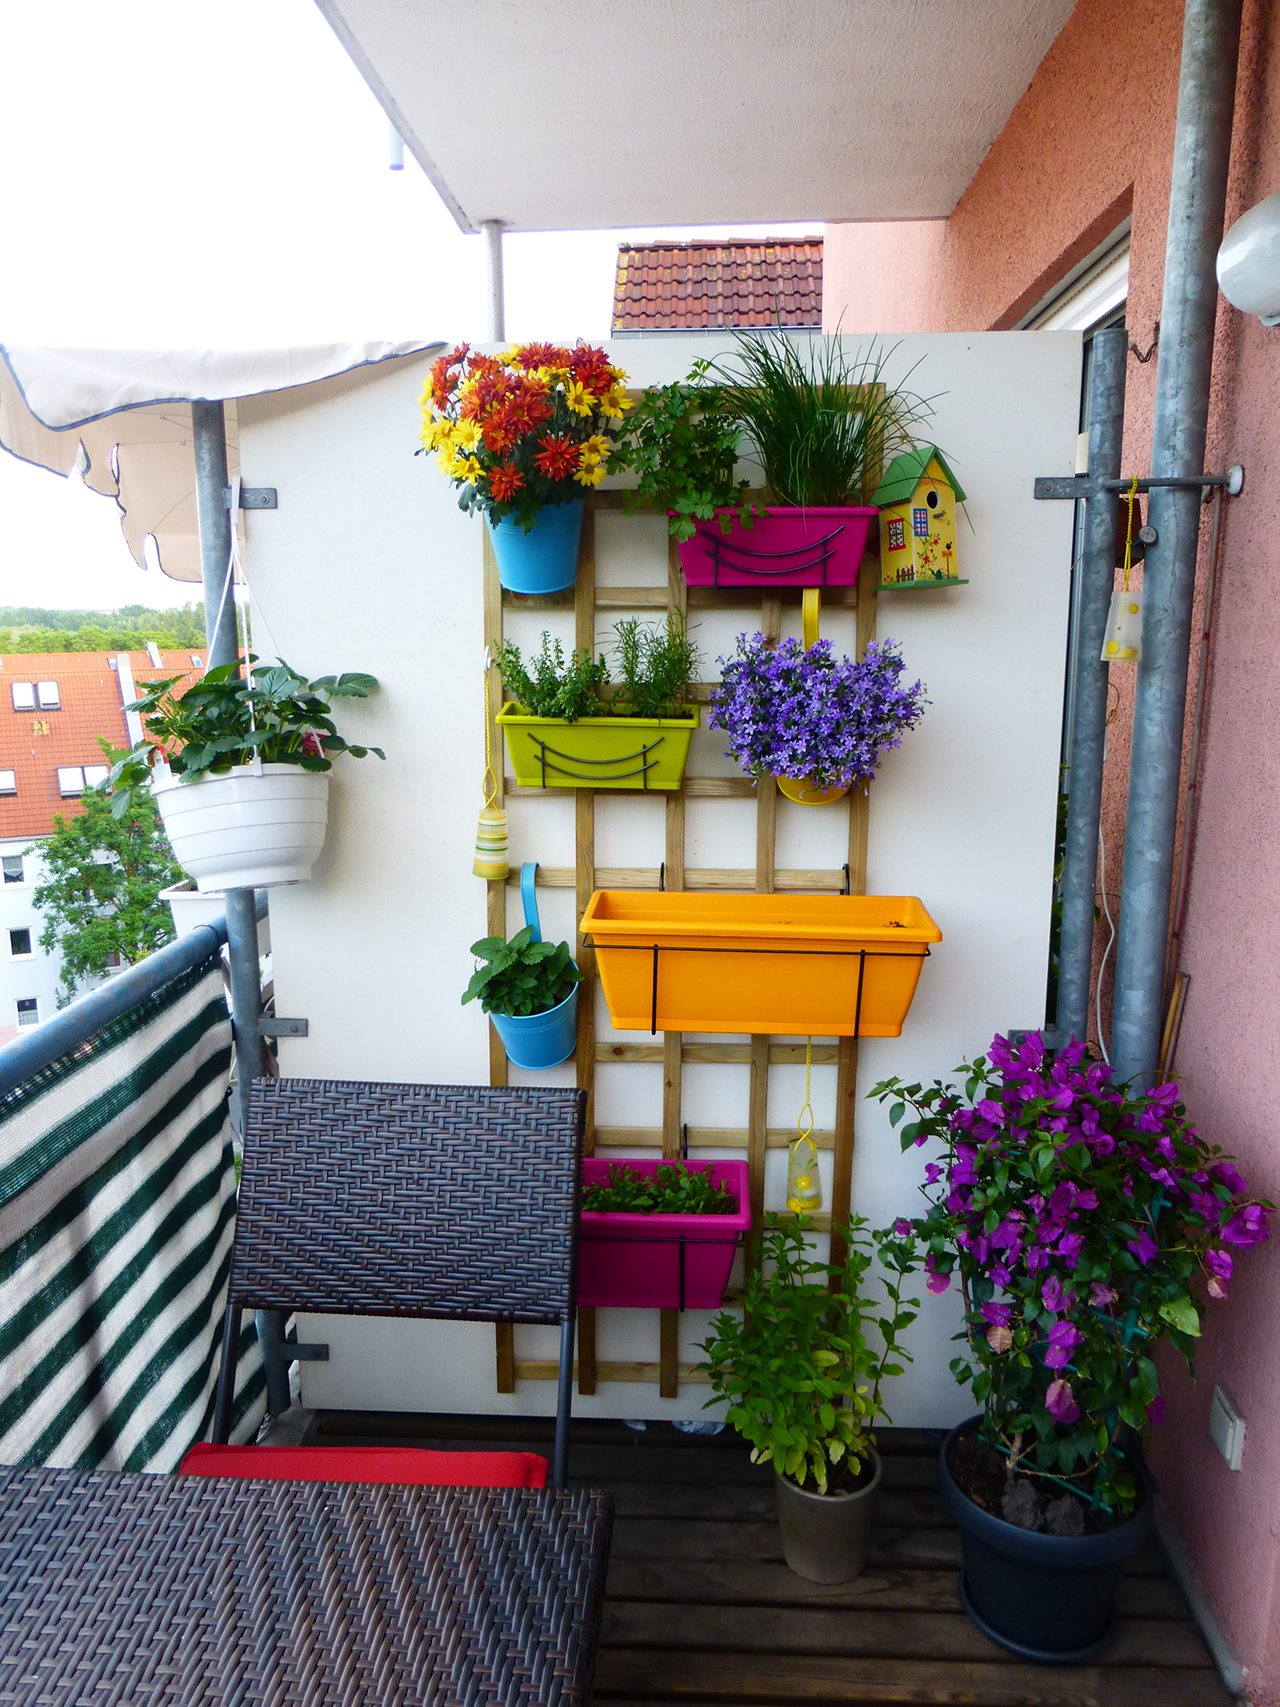 Balcony flower garden ideas home decorating ideas - champsba.